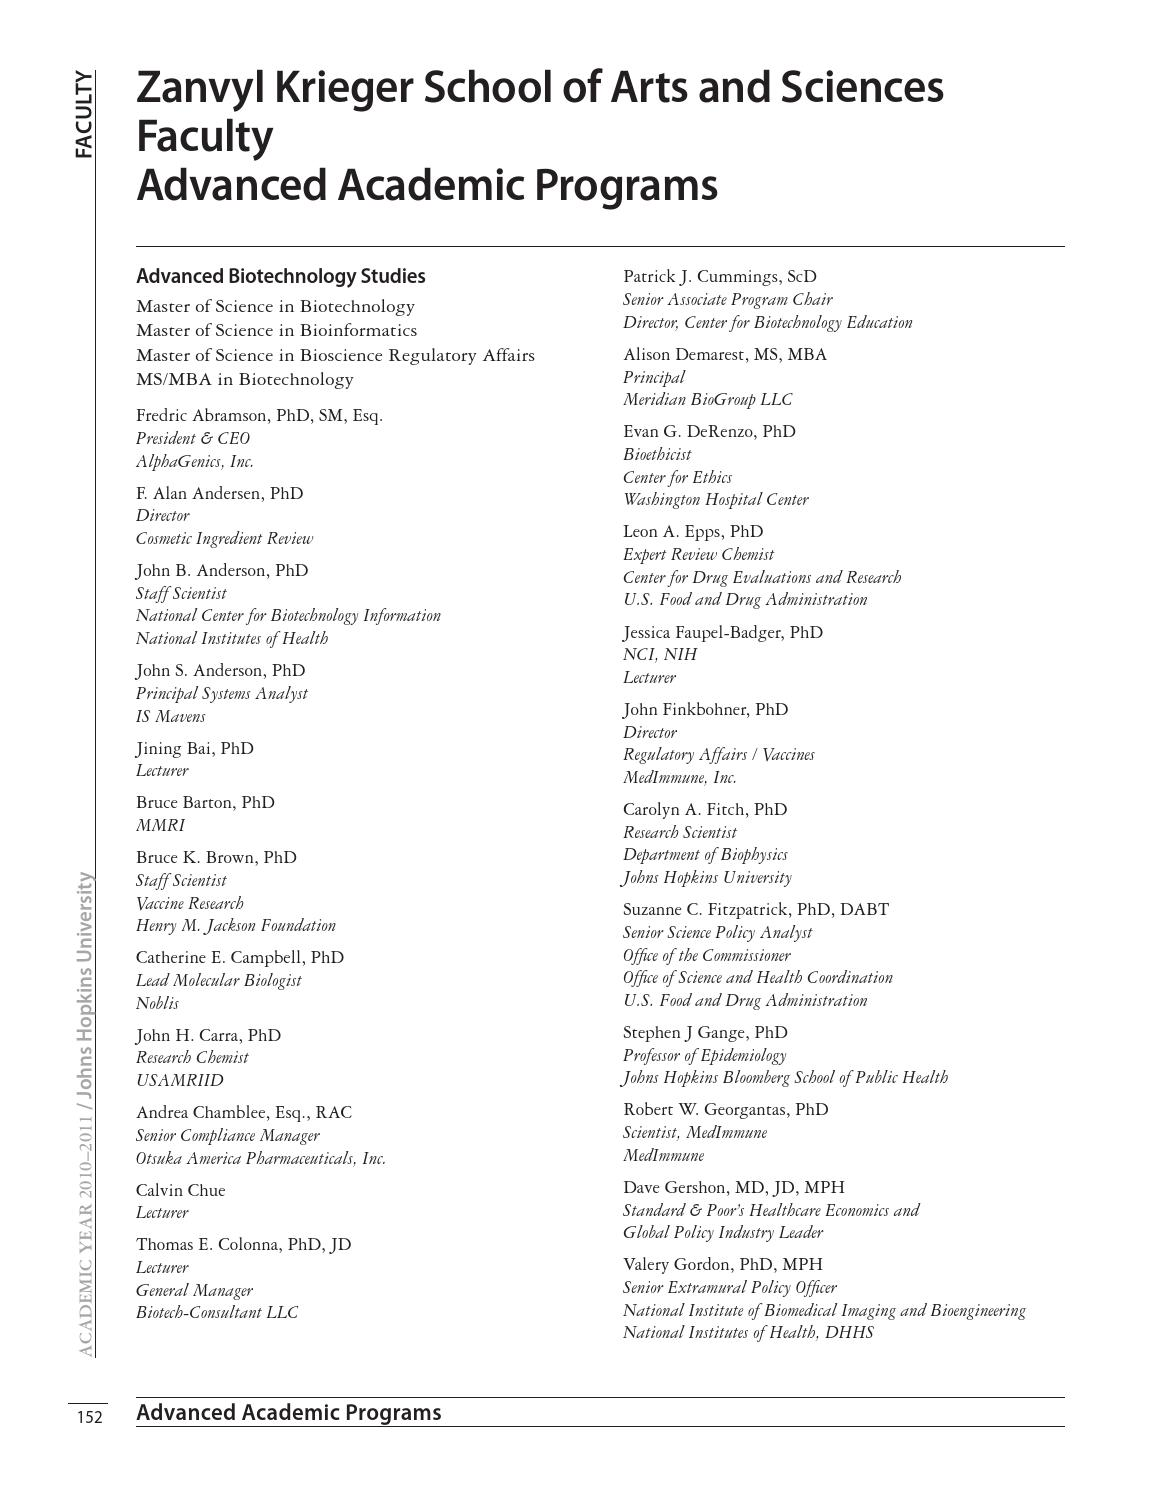 2010-2011 Academic Catalog, Advanced Academic Programs by